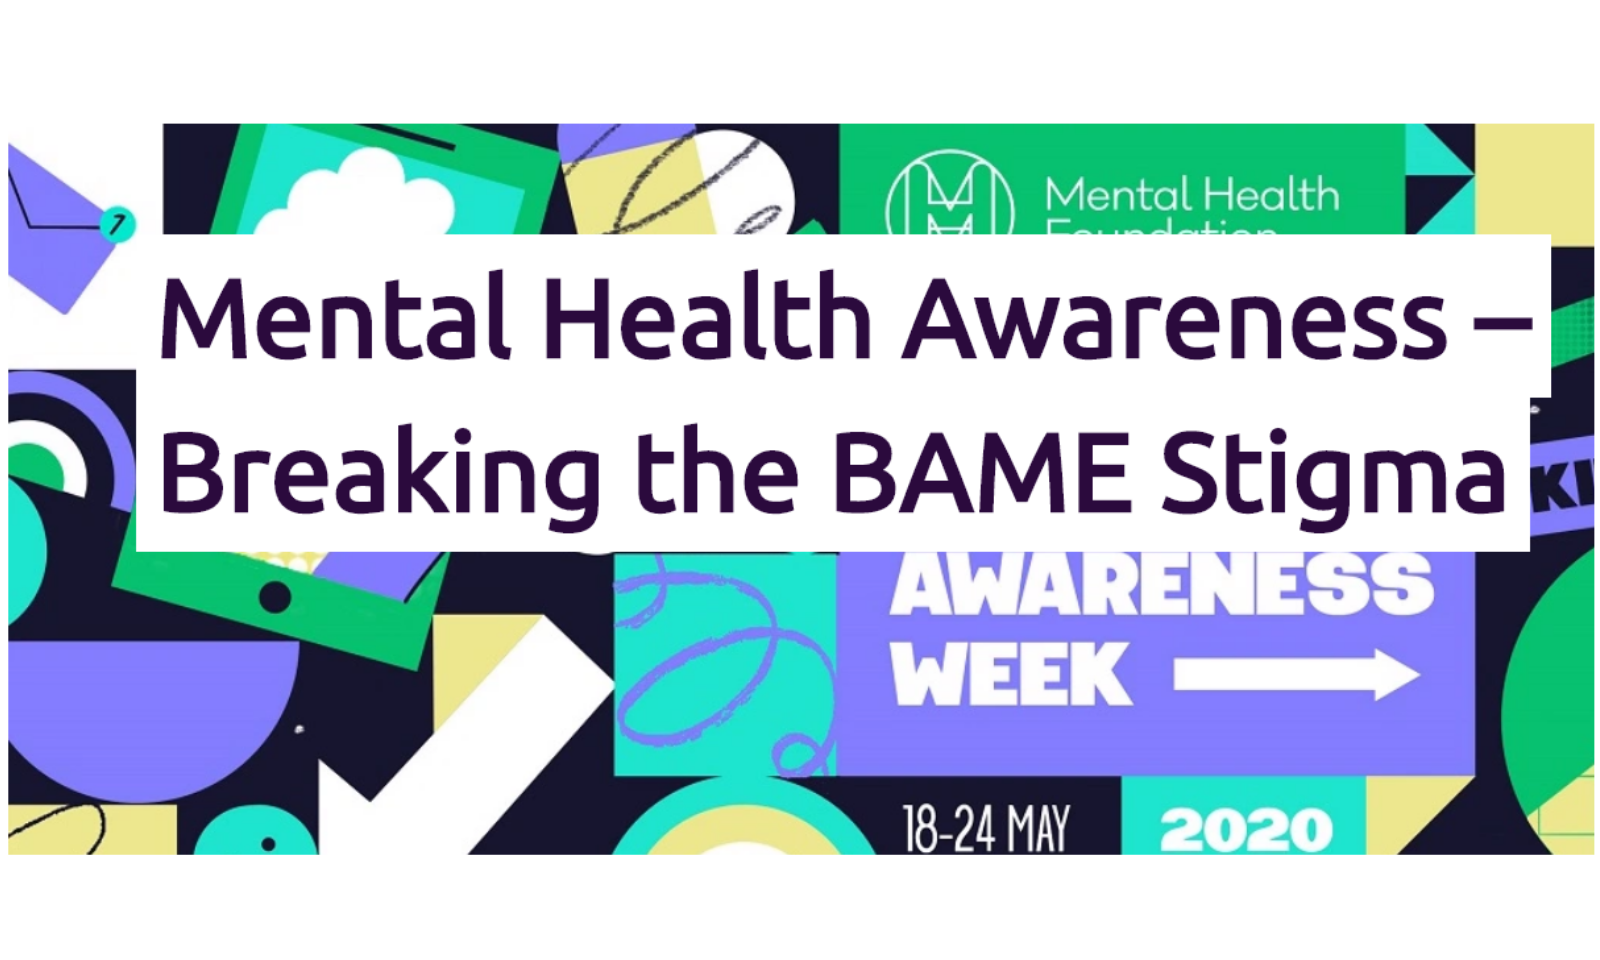 Mental Health Awareness – Breaking the BAME Stigma